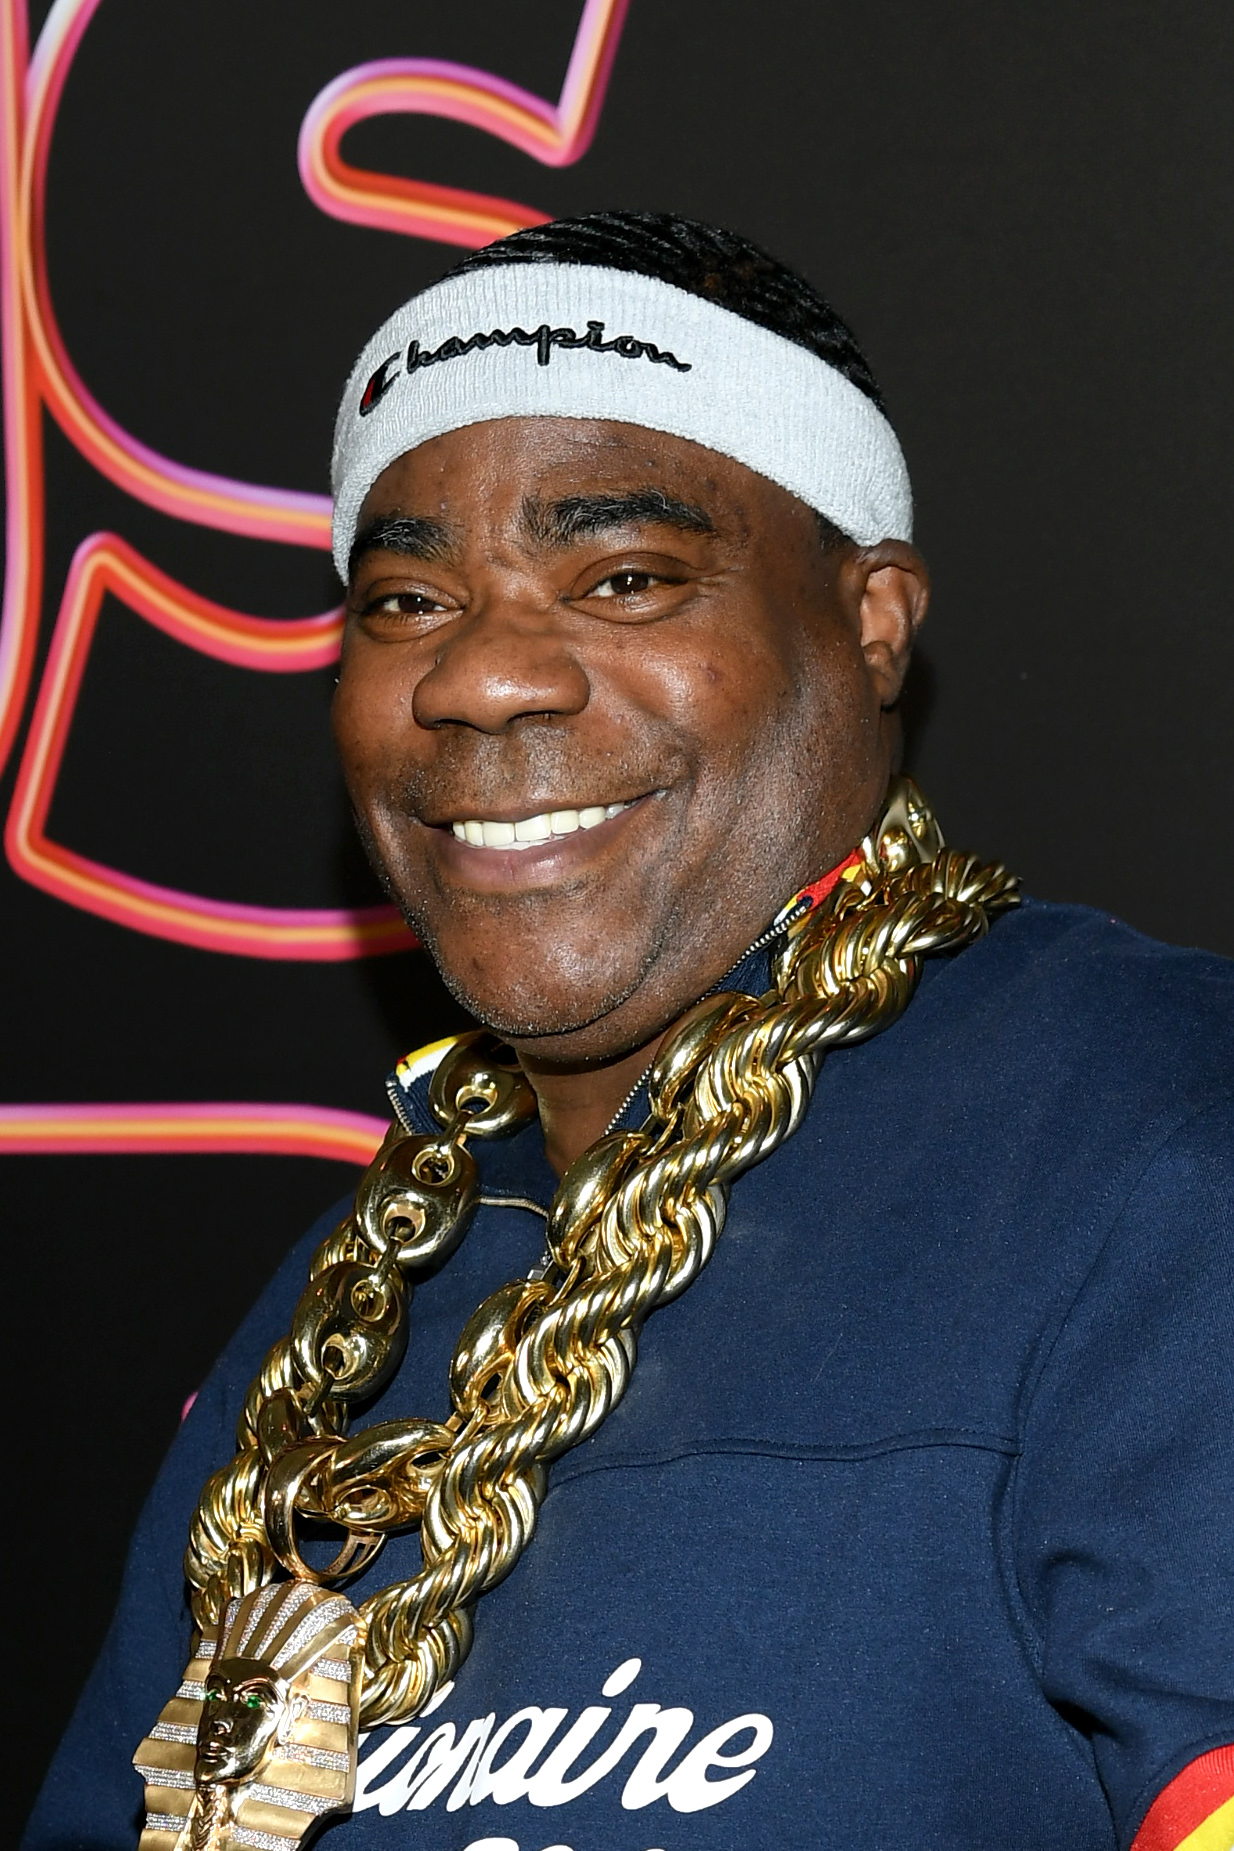 Tracy Morgan Reportedly Involved In A Car Accident In Bugatti He Only Had For 15 Minutes!